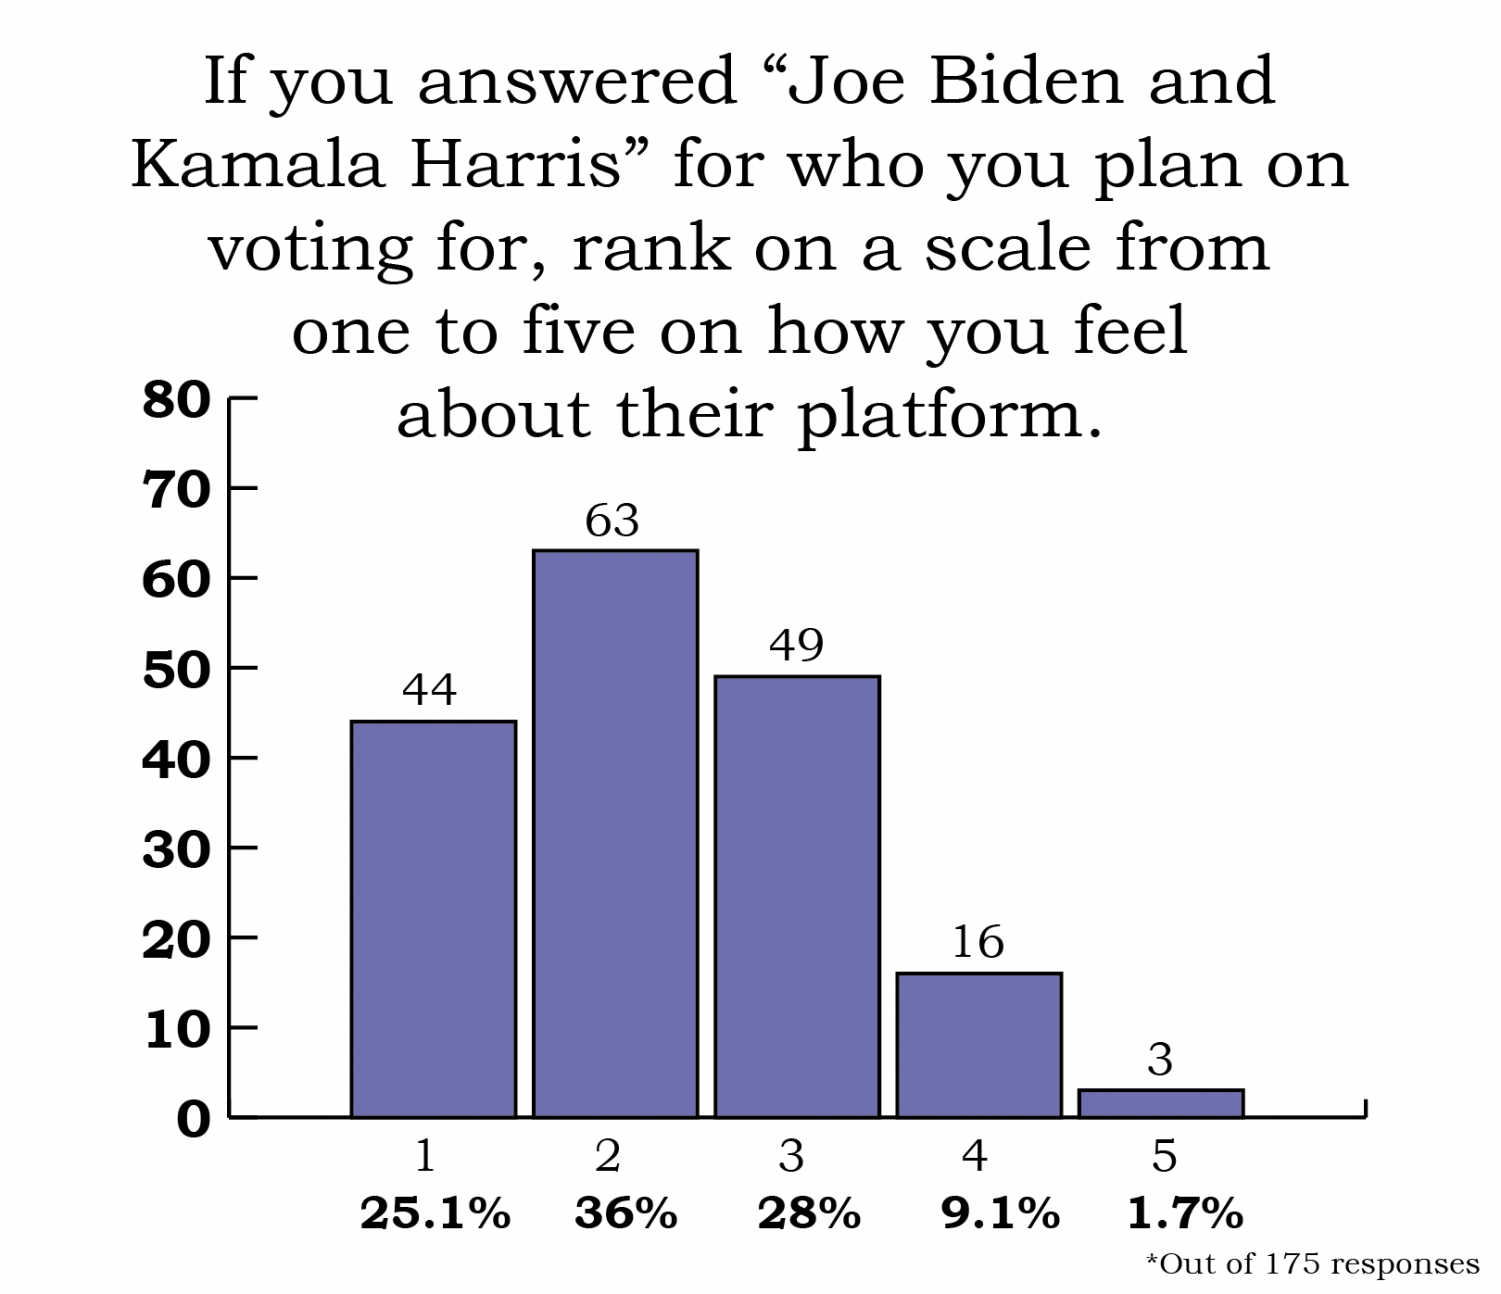 survey results in a bar chart showing that most respondents rated the Biden/Harris platform as 2 out of 5